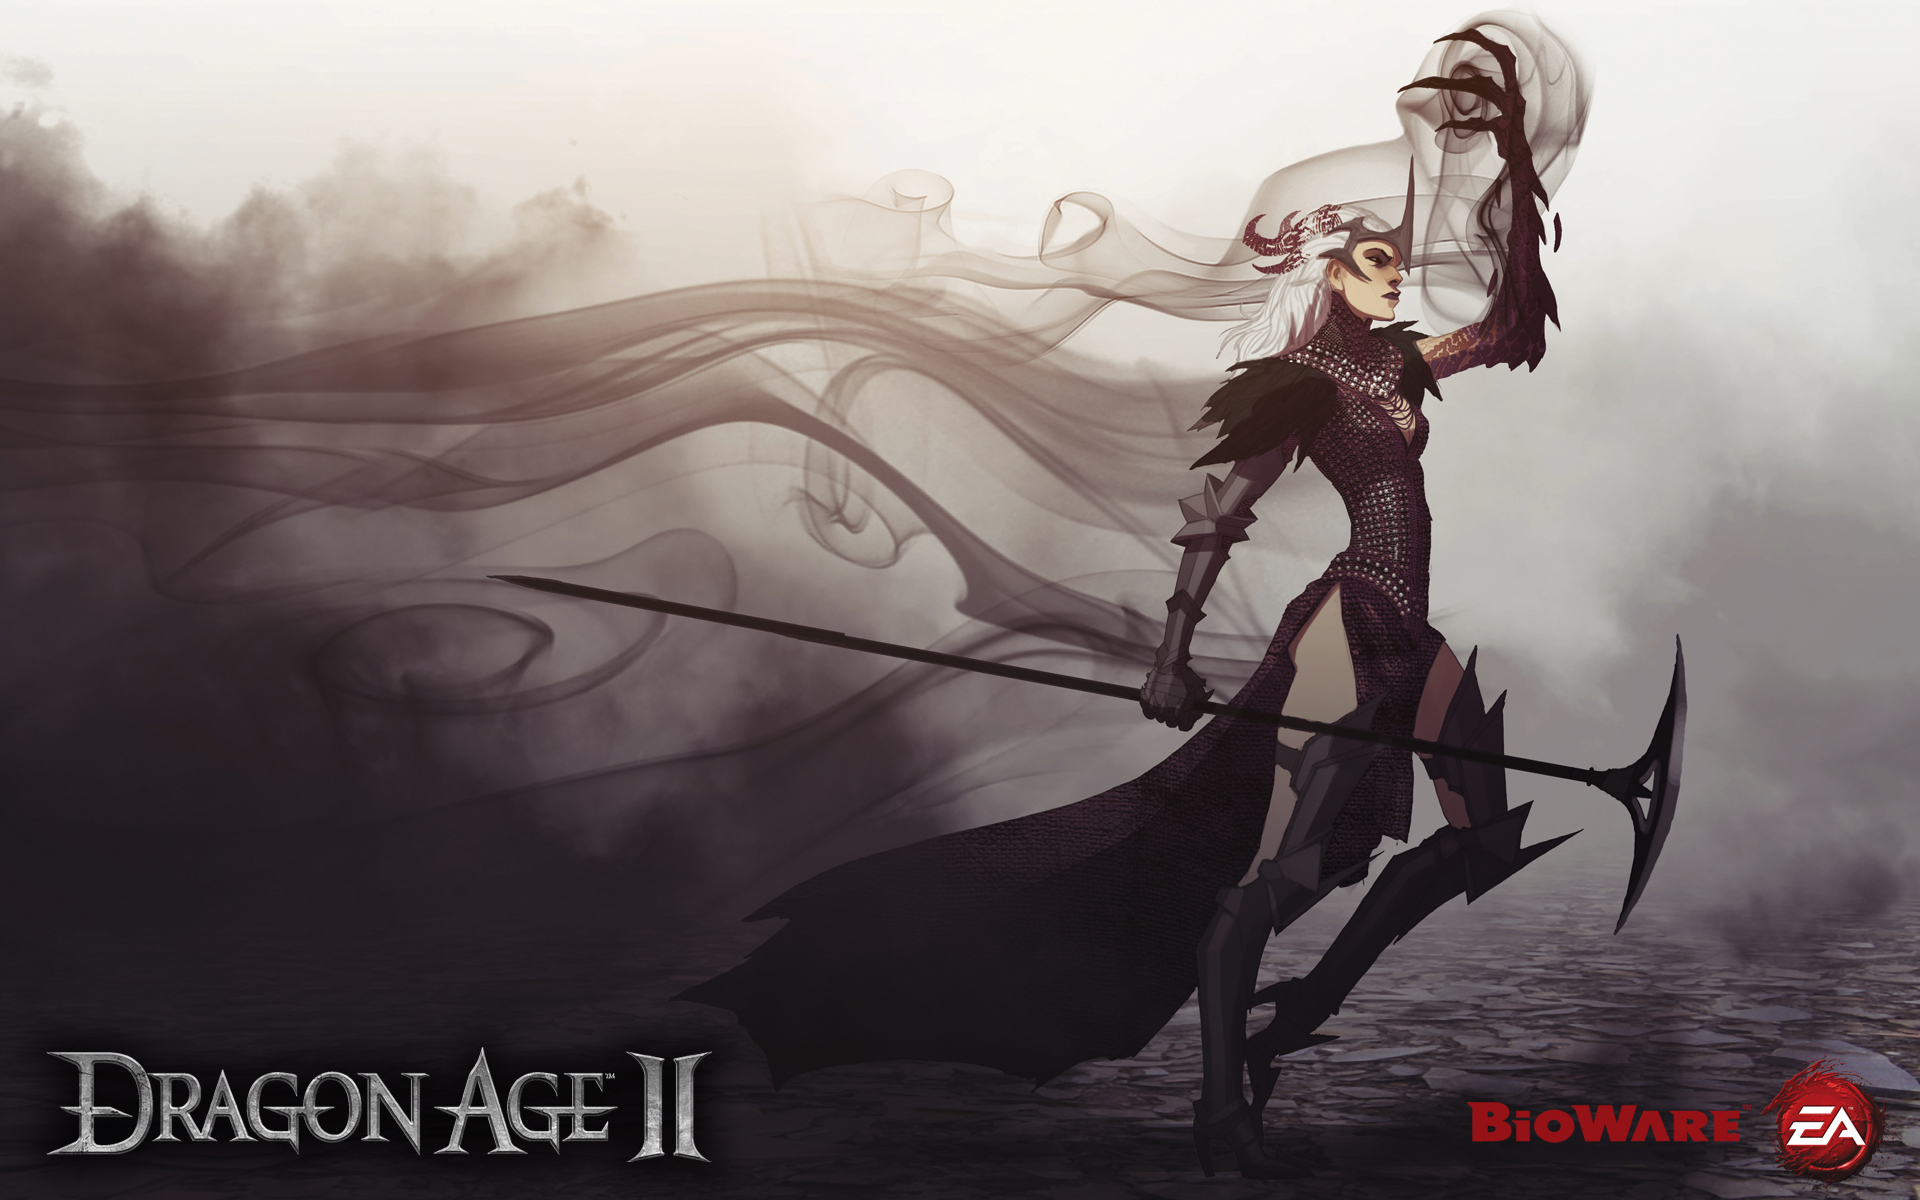 Dragon Age 2 in air